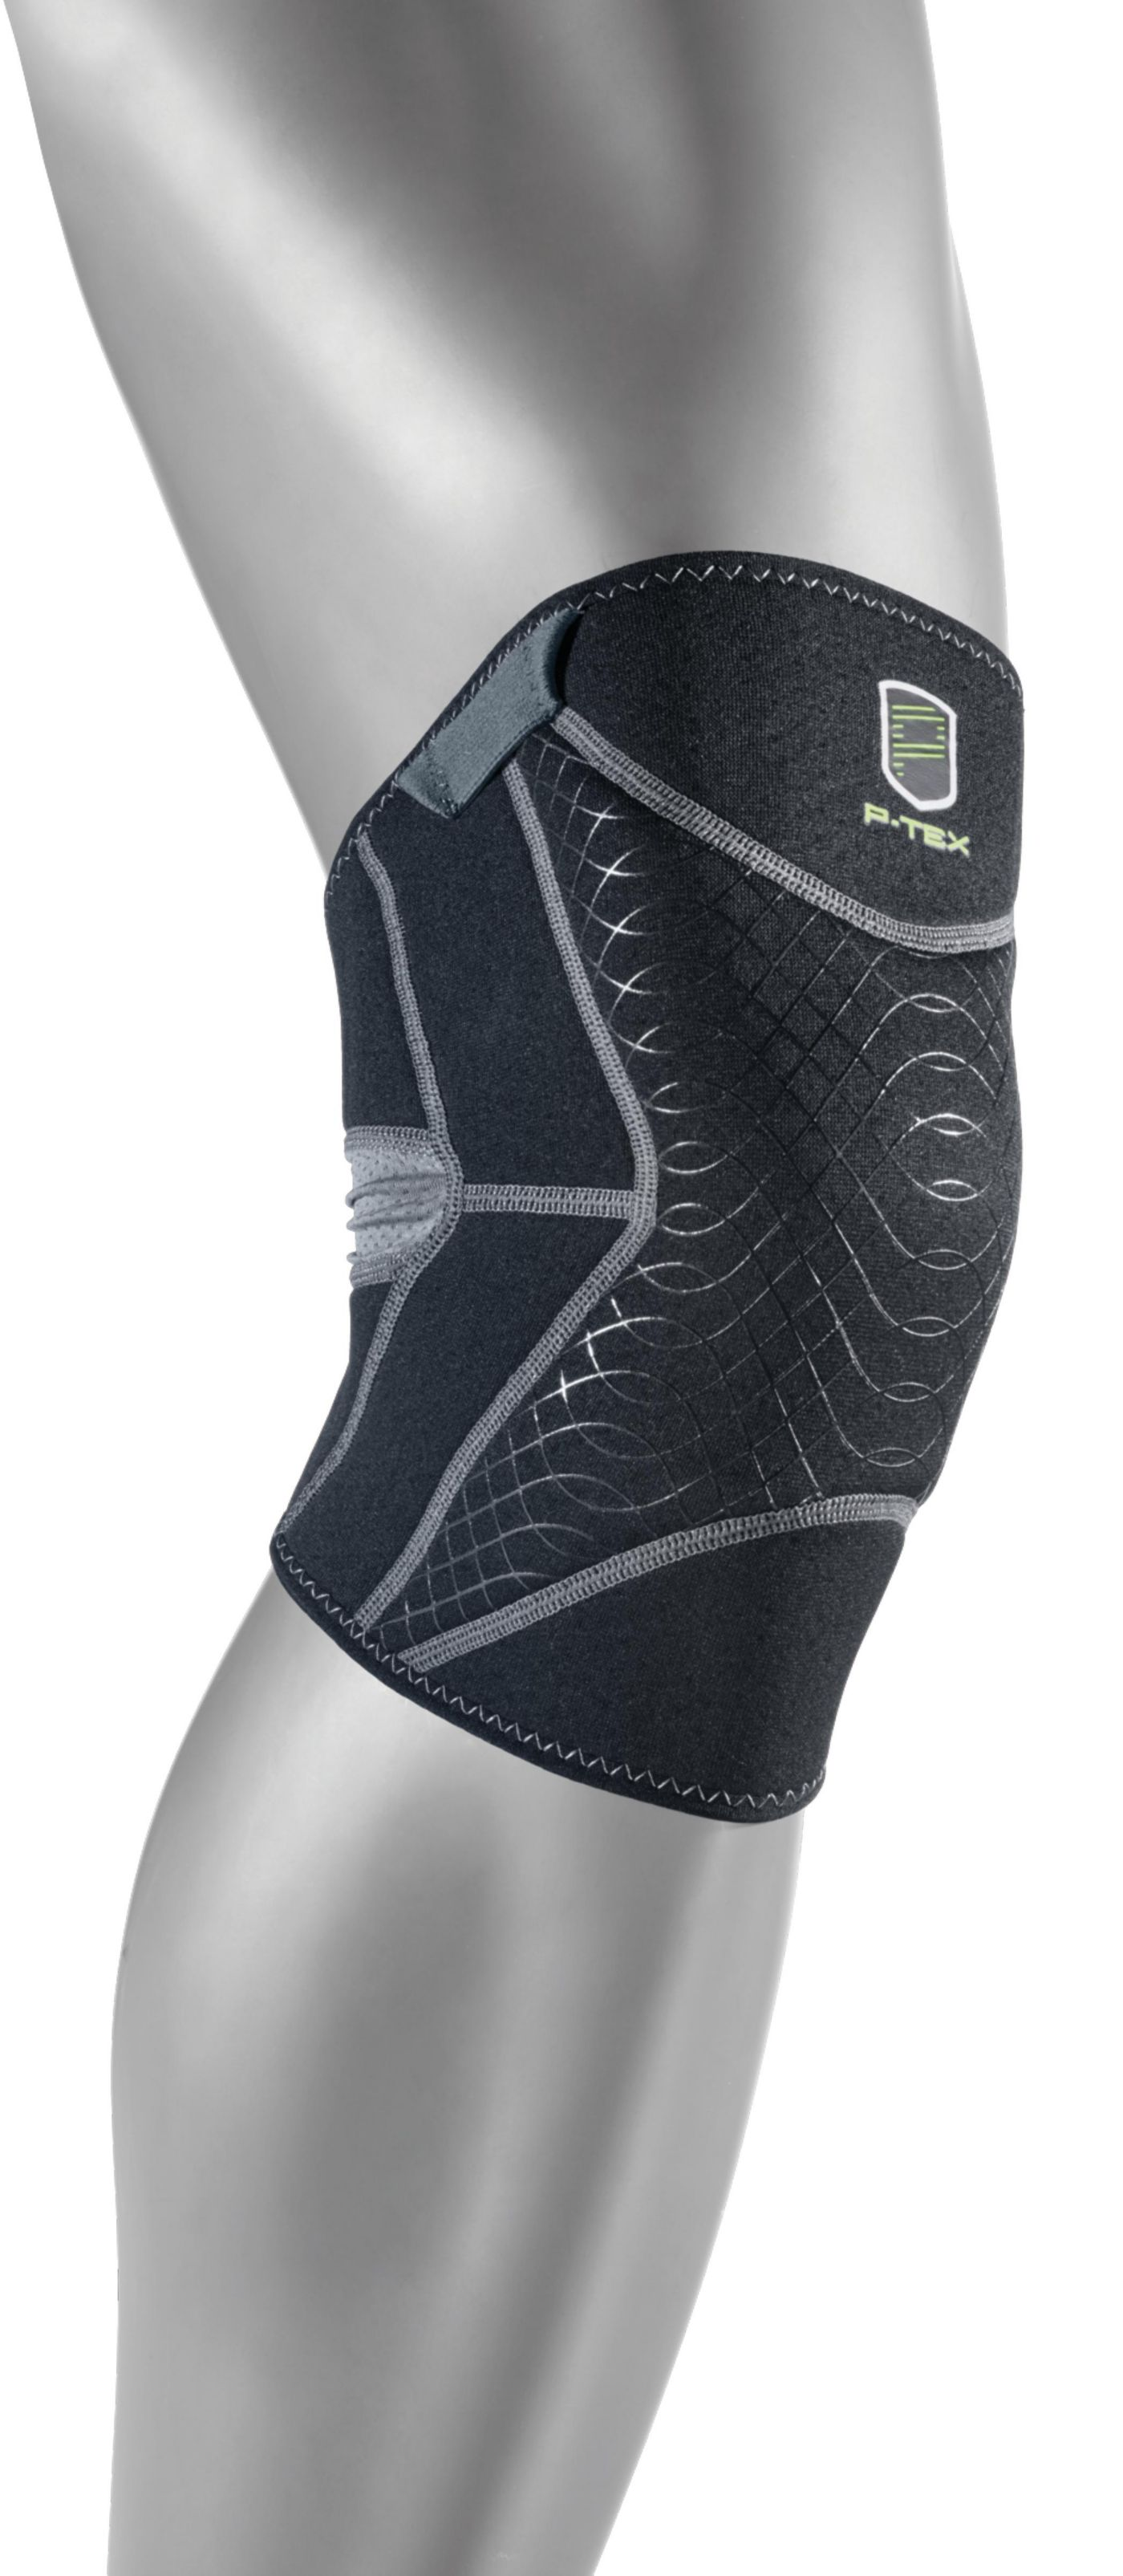 P-TEX Pro Closed Patella Knee Sleeve